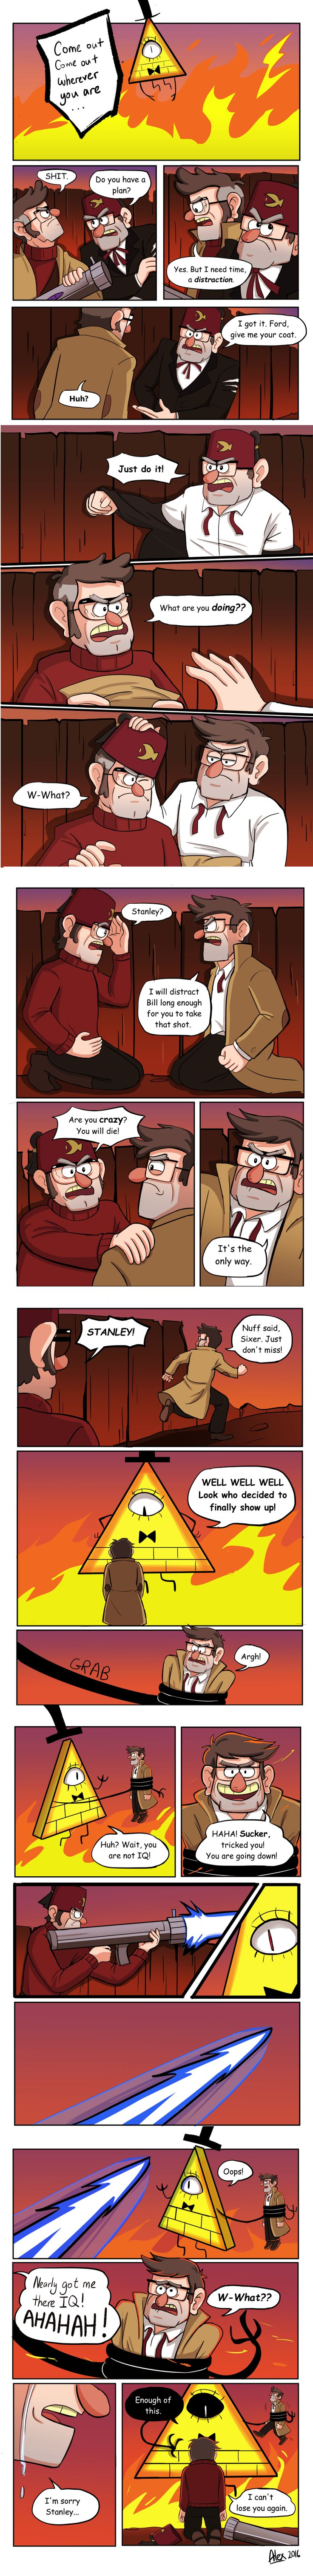 Sacrifice  Finally finished this comic as a tribute to the amazing show that is Gravity Falls. Wanted to draw the Stan twins teaming up to fight Bill, although Ford discovered that he really did love his brother a little too late.   GF Spoilers: Reblogging as I can't believe my guess was so close! Stan taking on Ford's identity to sacrifice himself and trick Bill, Ford wearing Stan's Fez… AHHHH Great, amazing episode- thanks so much for the wild ride.